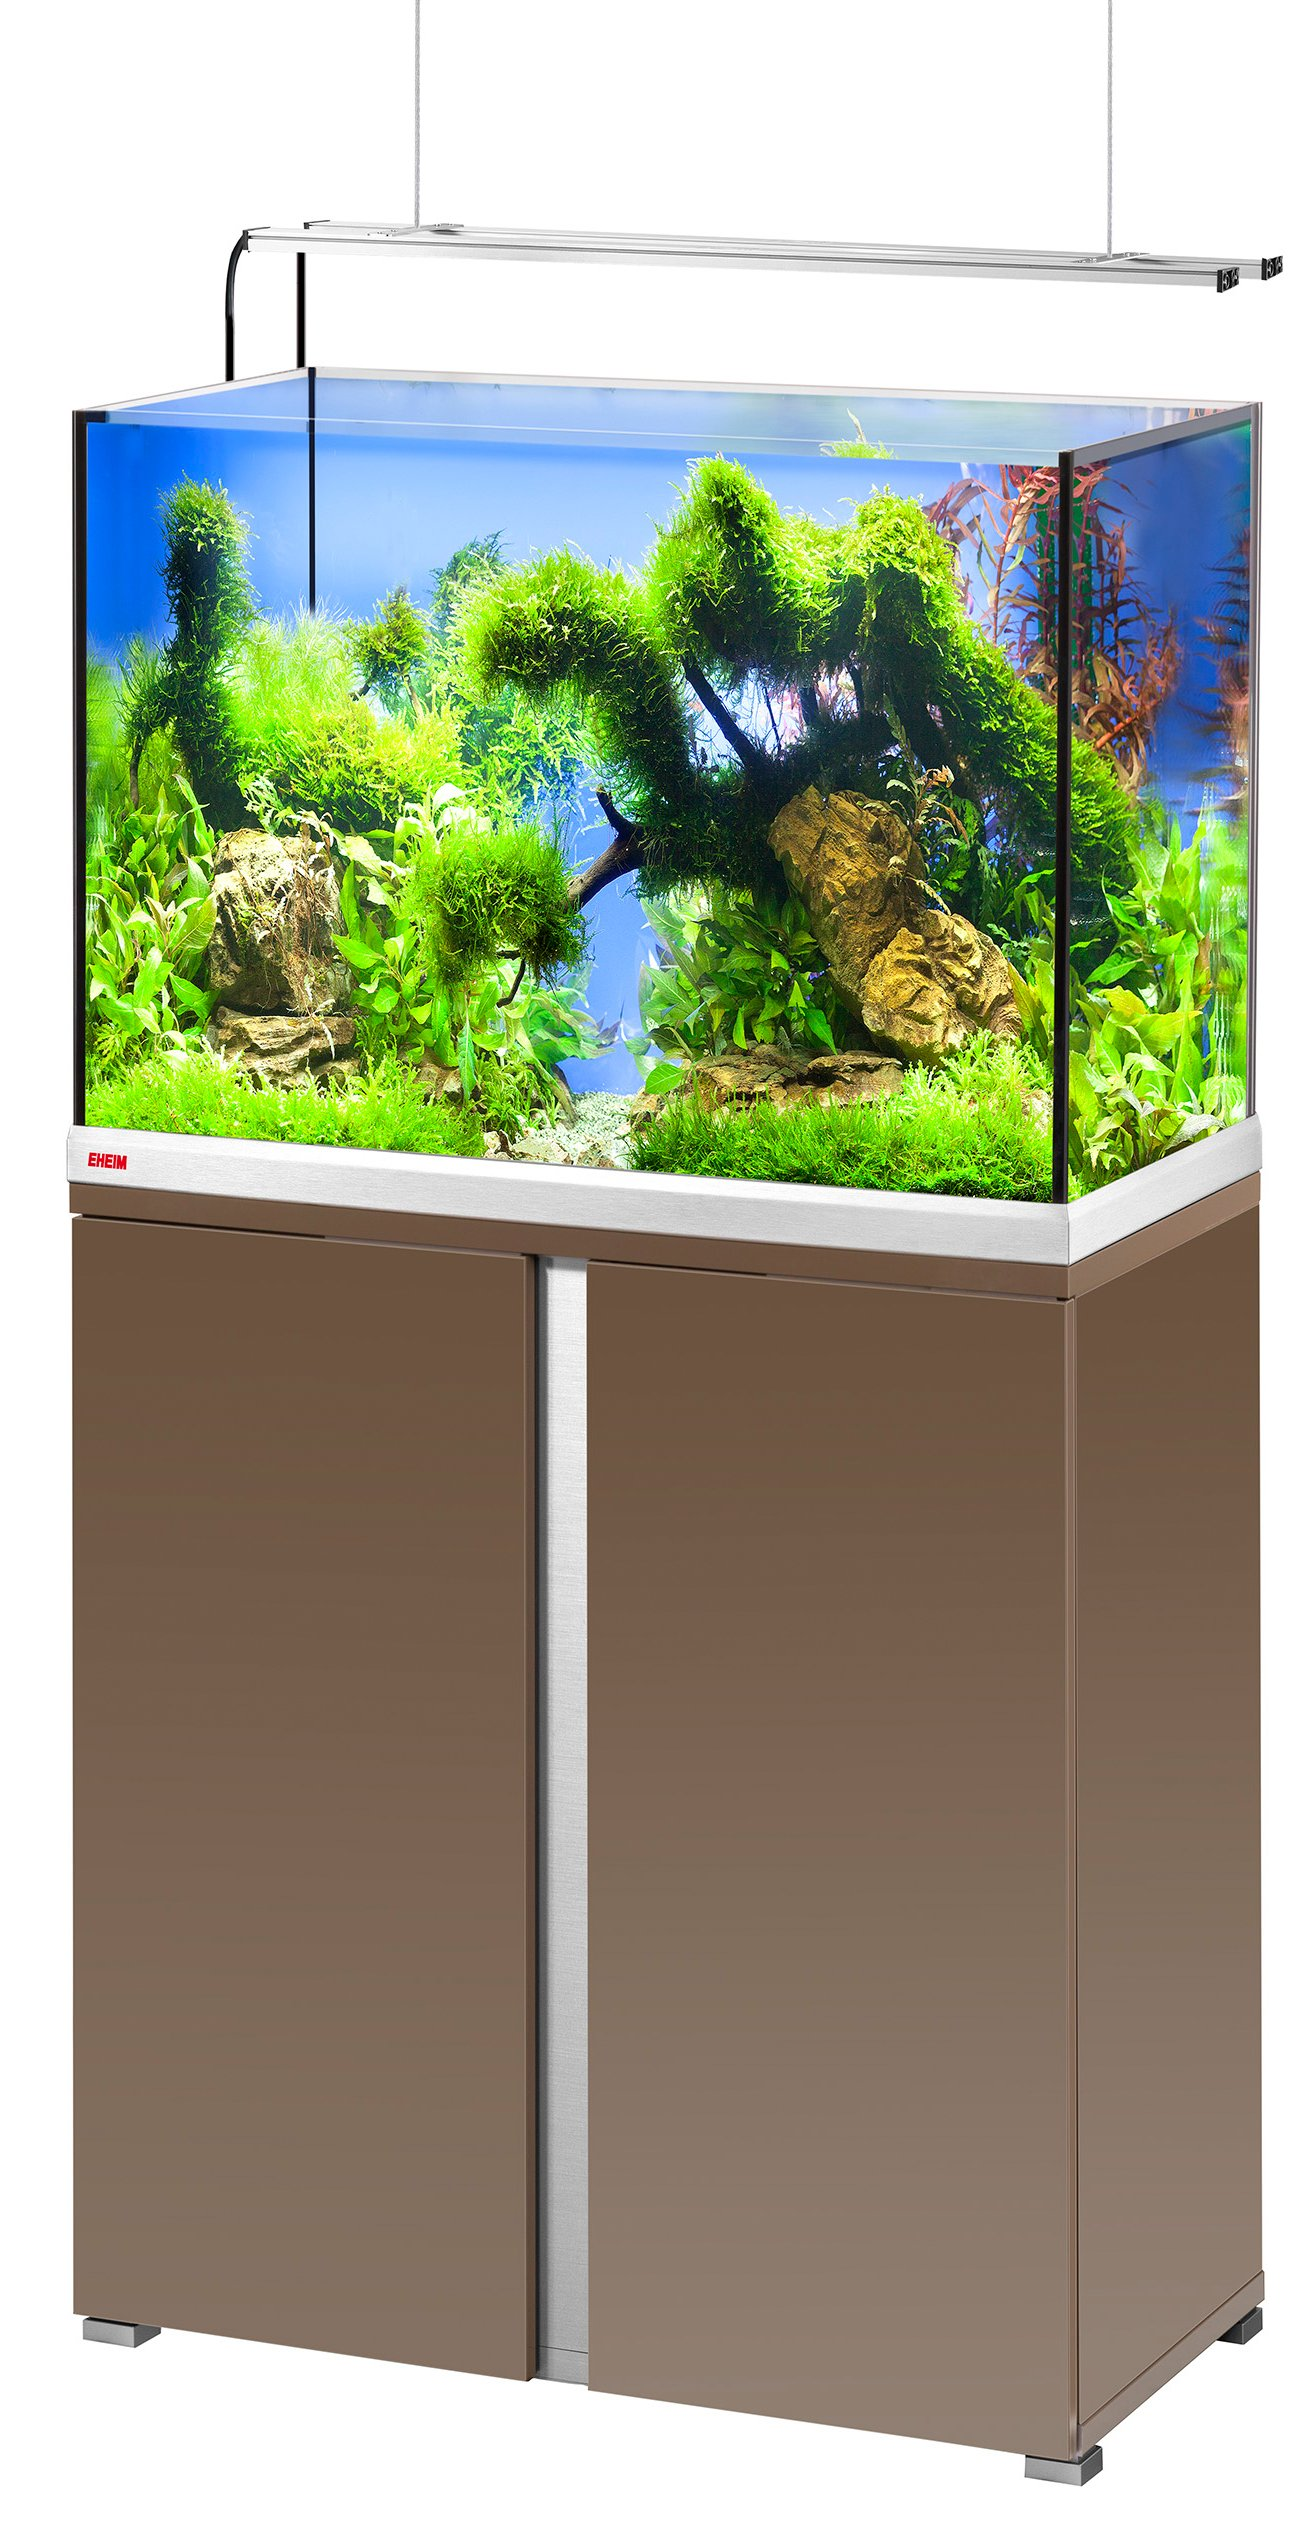 Preise EHEIM Aquarium-Kombination proxima plus 175